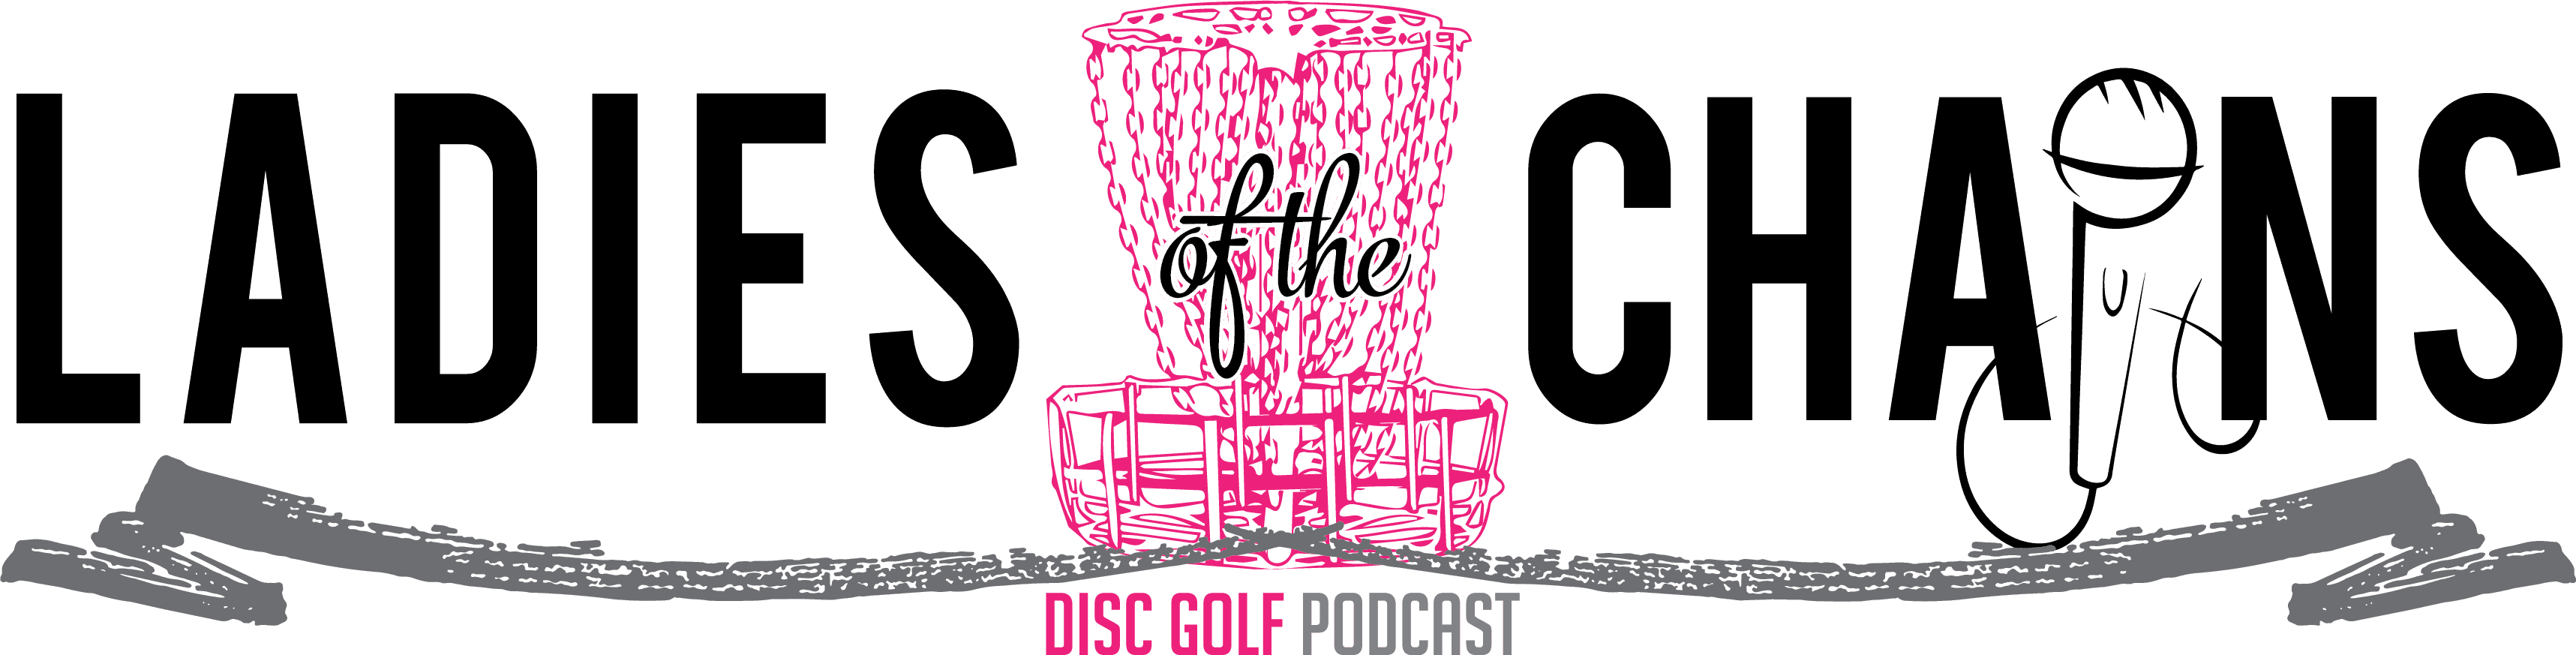 Ladies of the Chains Podcast—All Things Women's Disc Golf